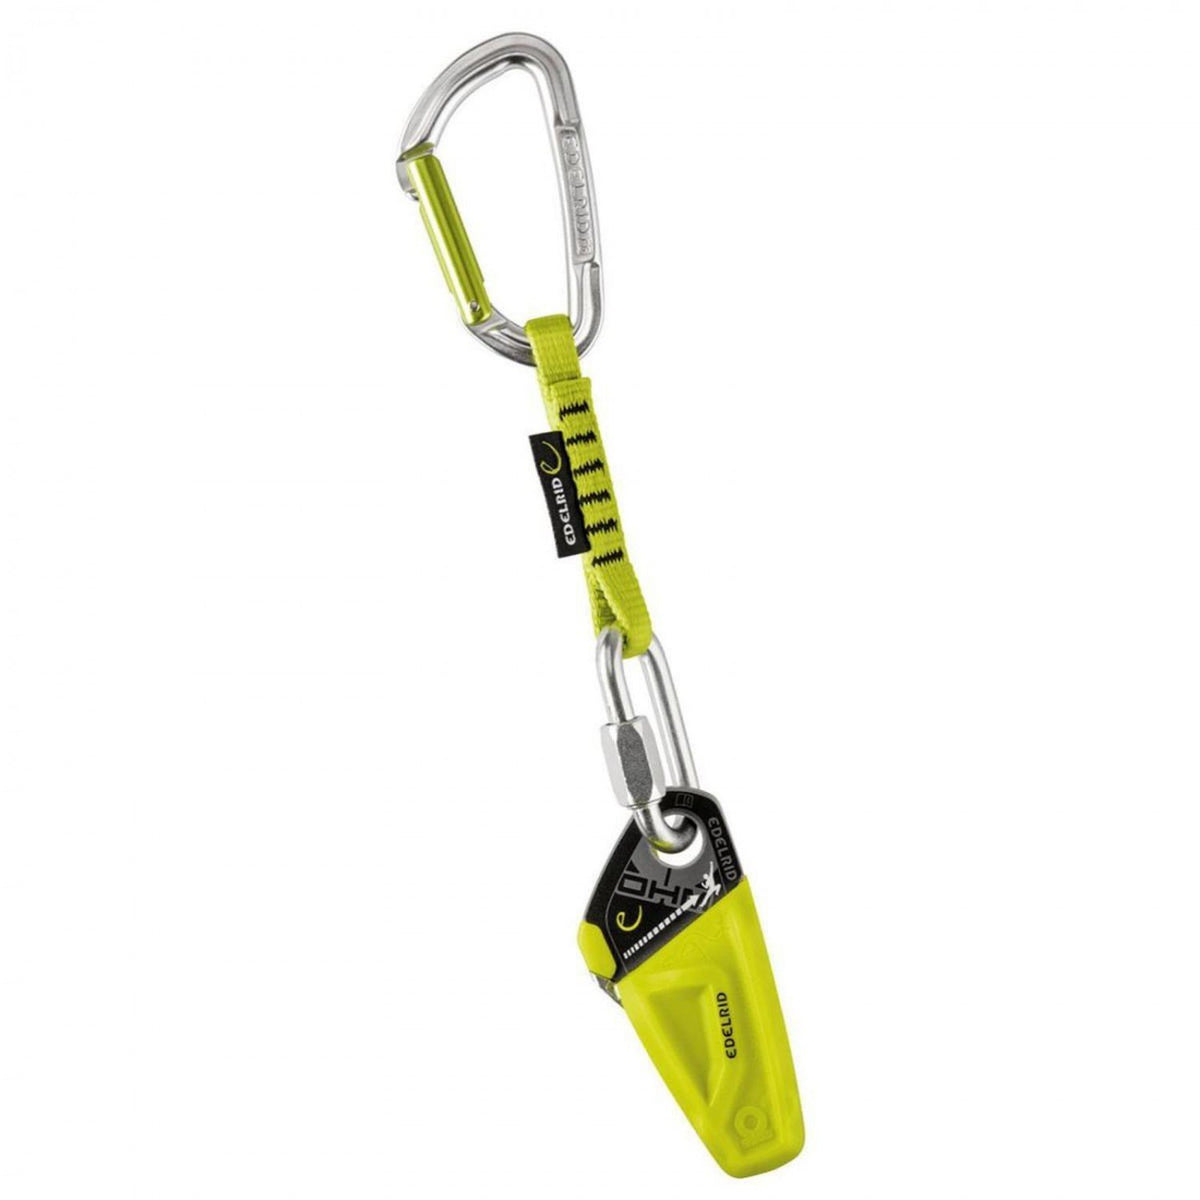 Edelrid Ohm Assisted-braking Resistor, friction climbing device shown with quickdraw in green/silver